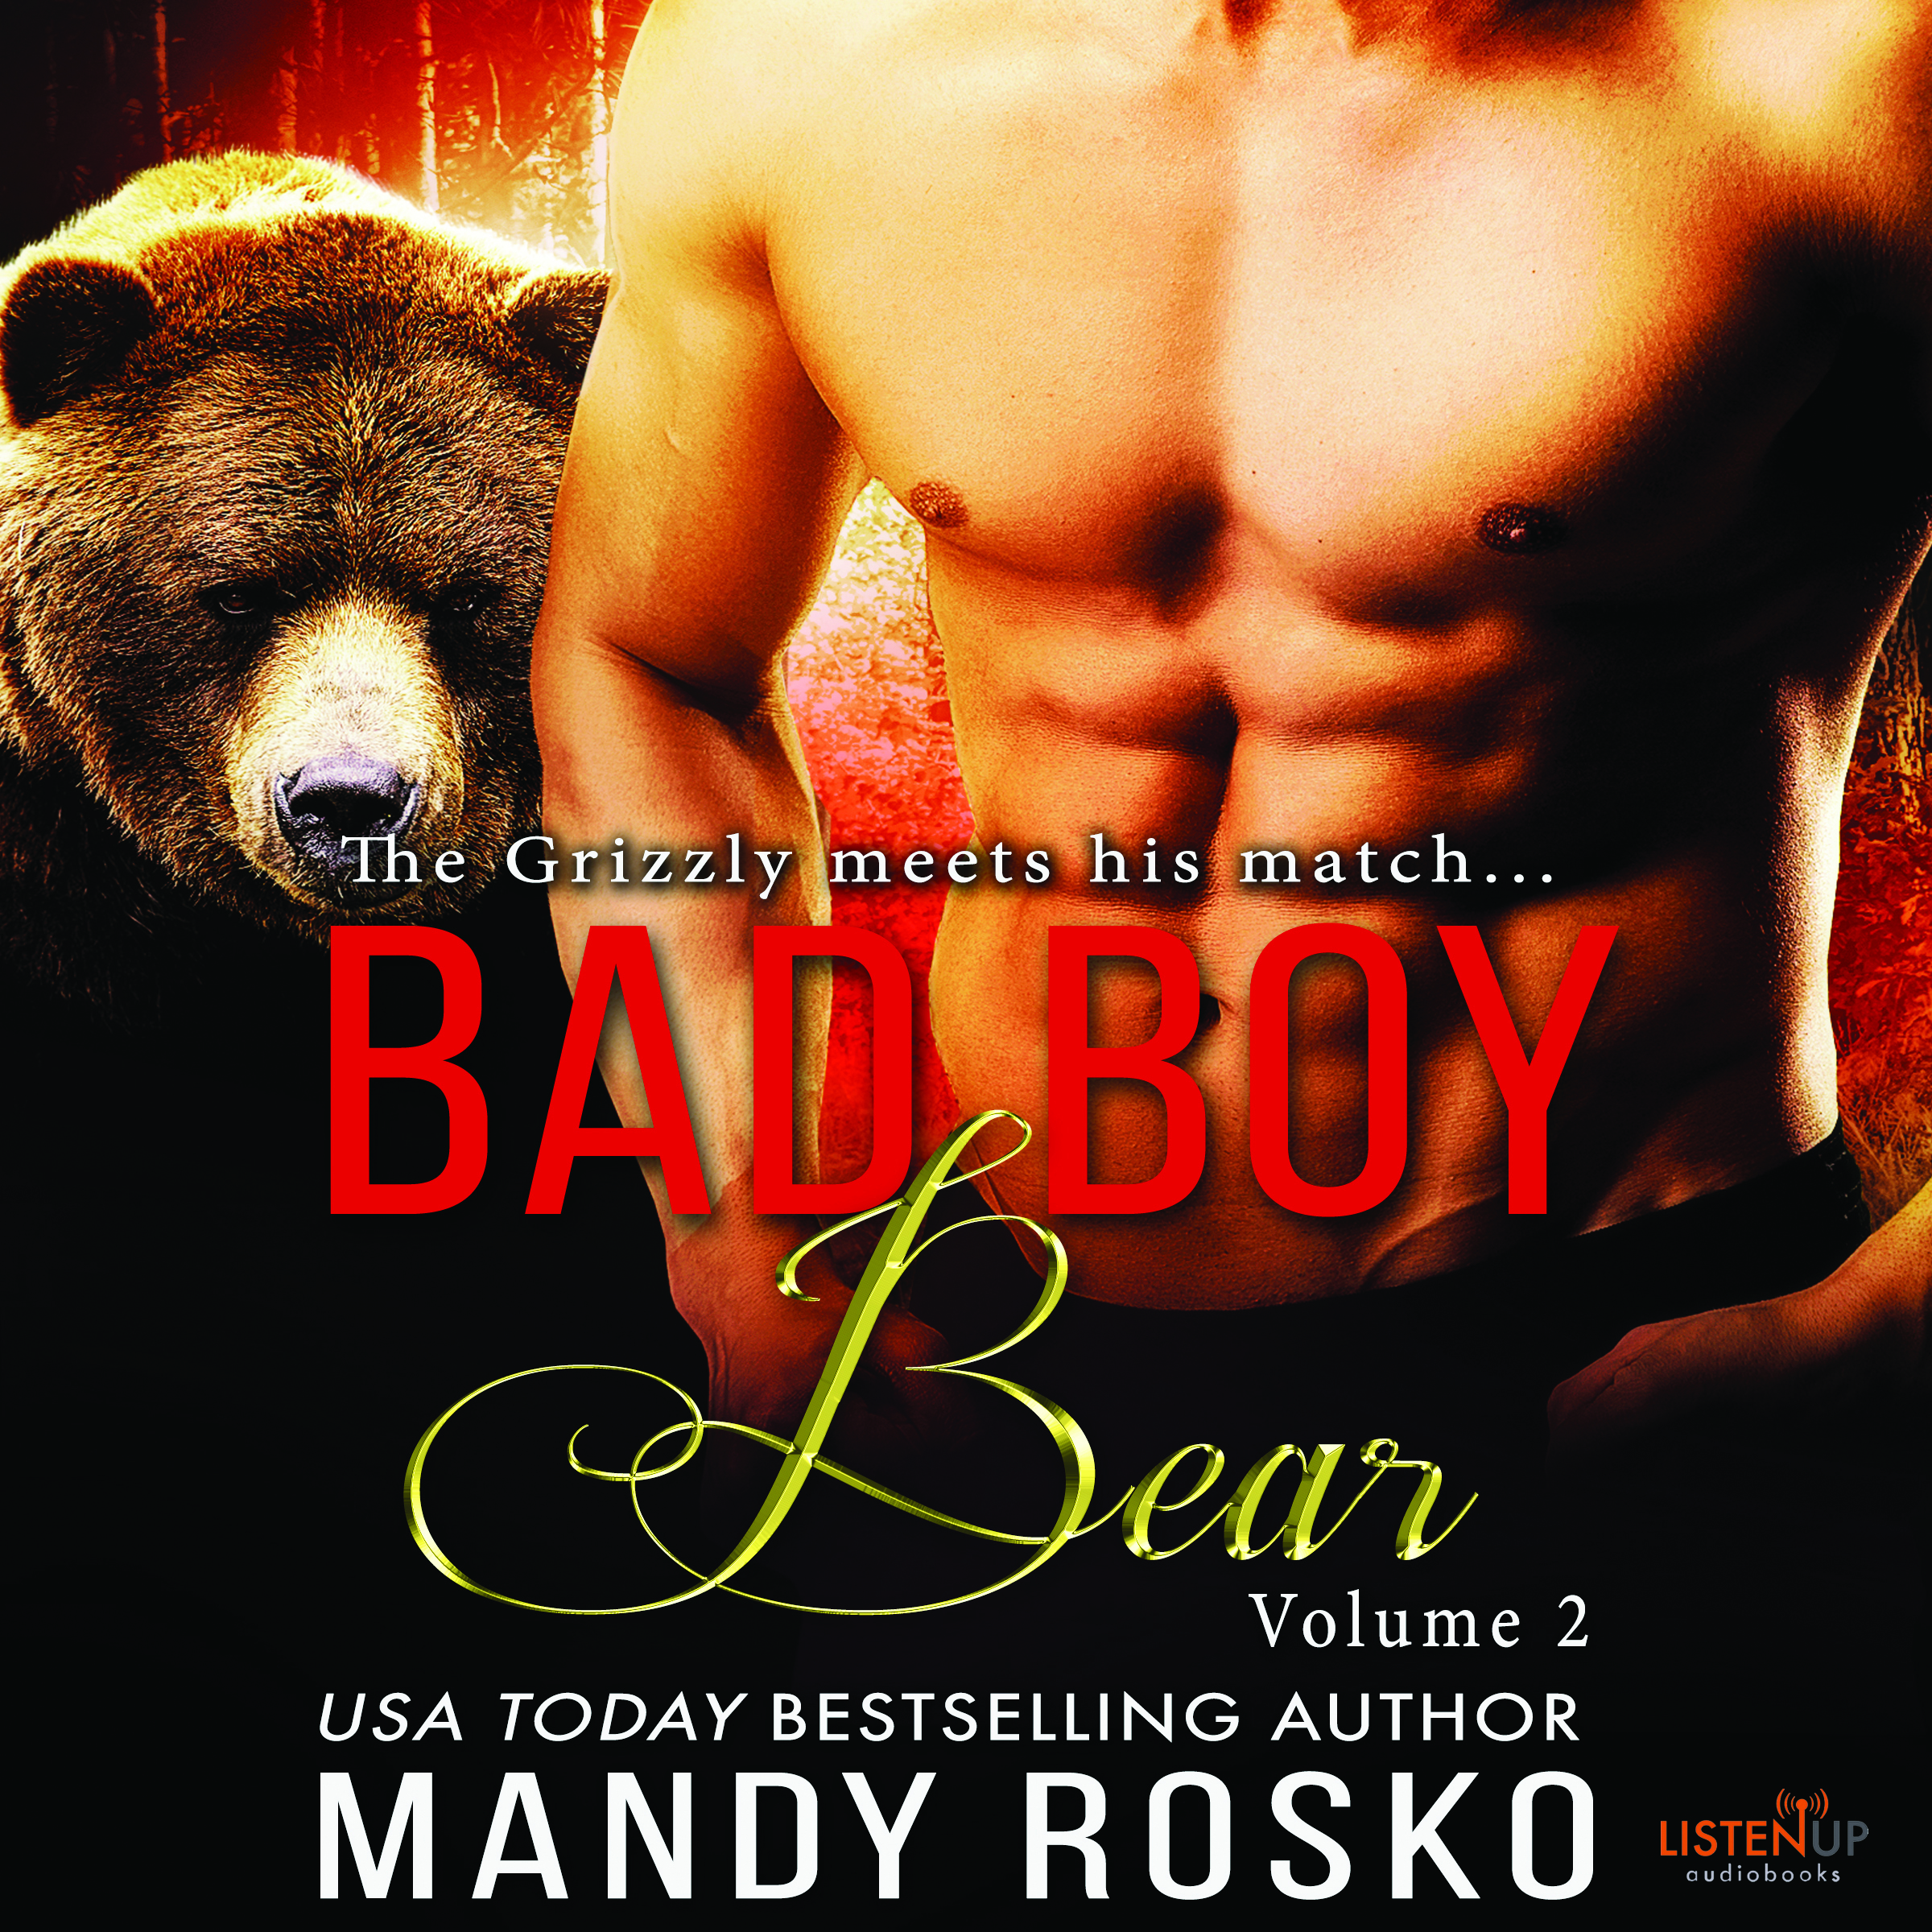 Bad Boy Bear Volume 2 cover image